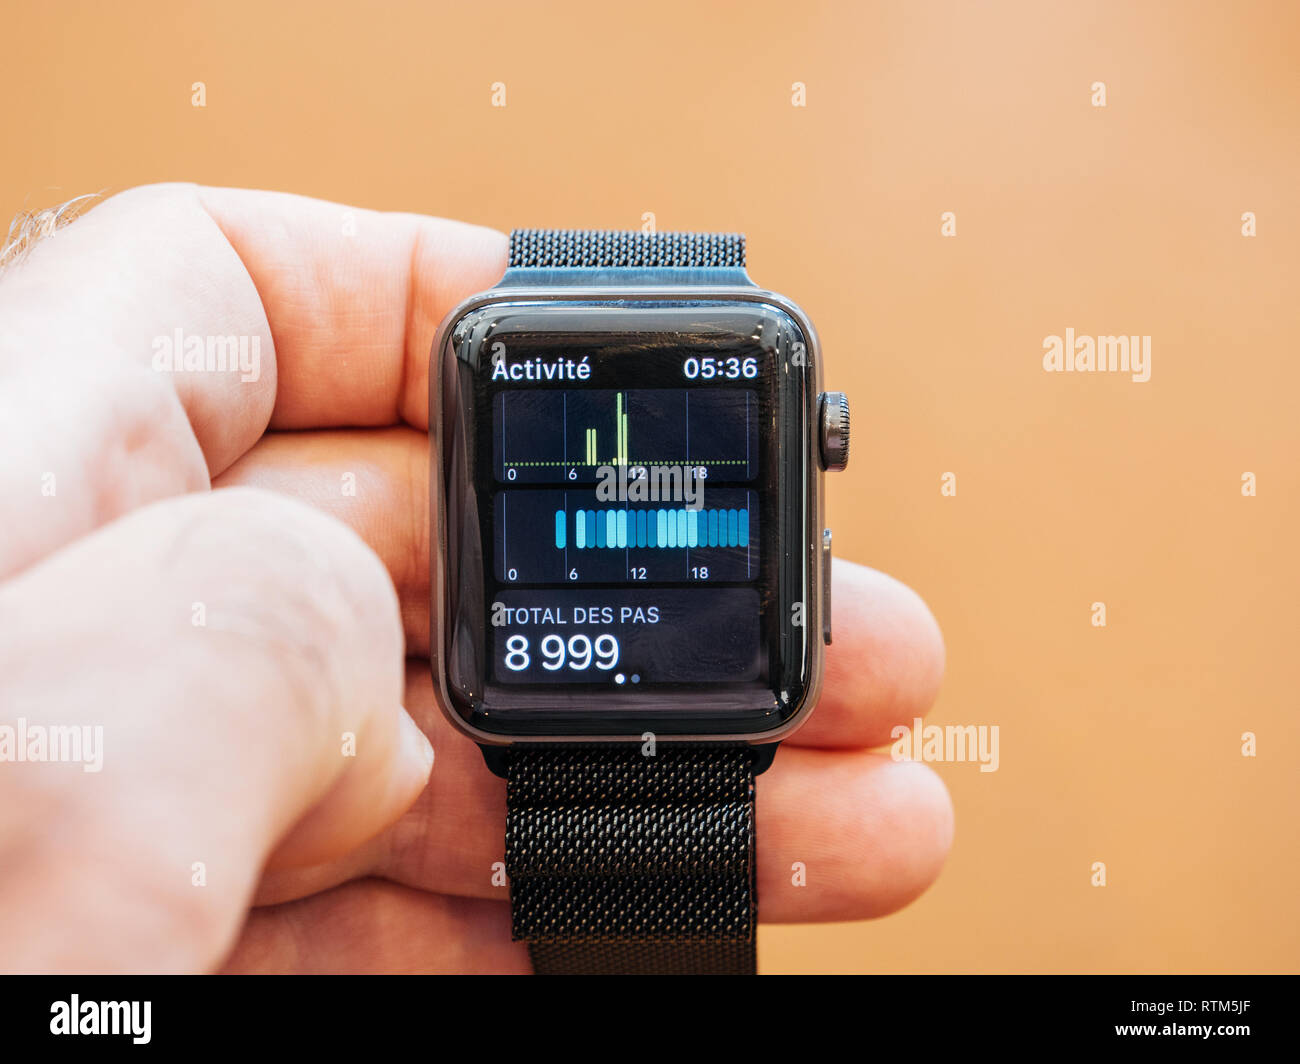 PARIS, FRANCE - SEP 22, 2017: New Apple Watch Series 3 goes on sale in Apple Store with total steps pedometer watch app  Stock Photo